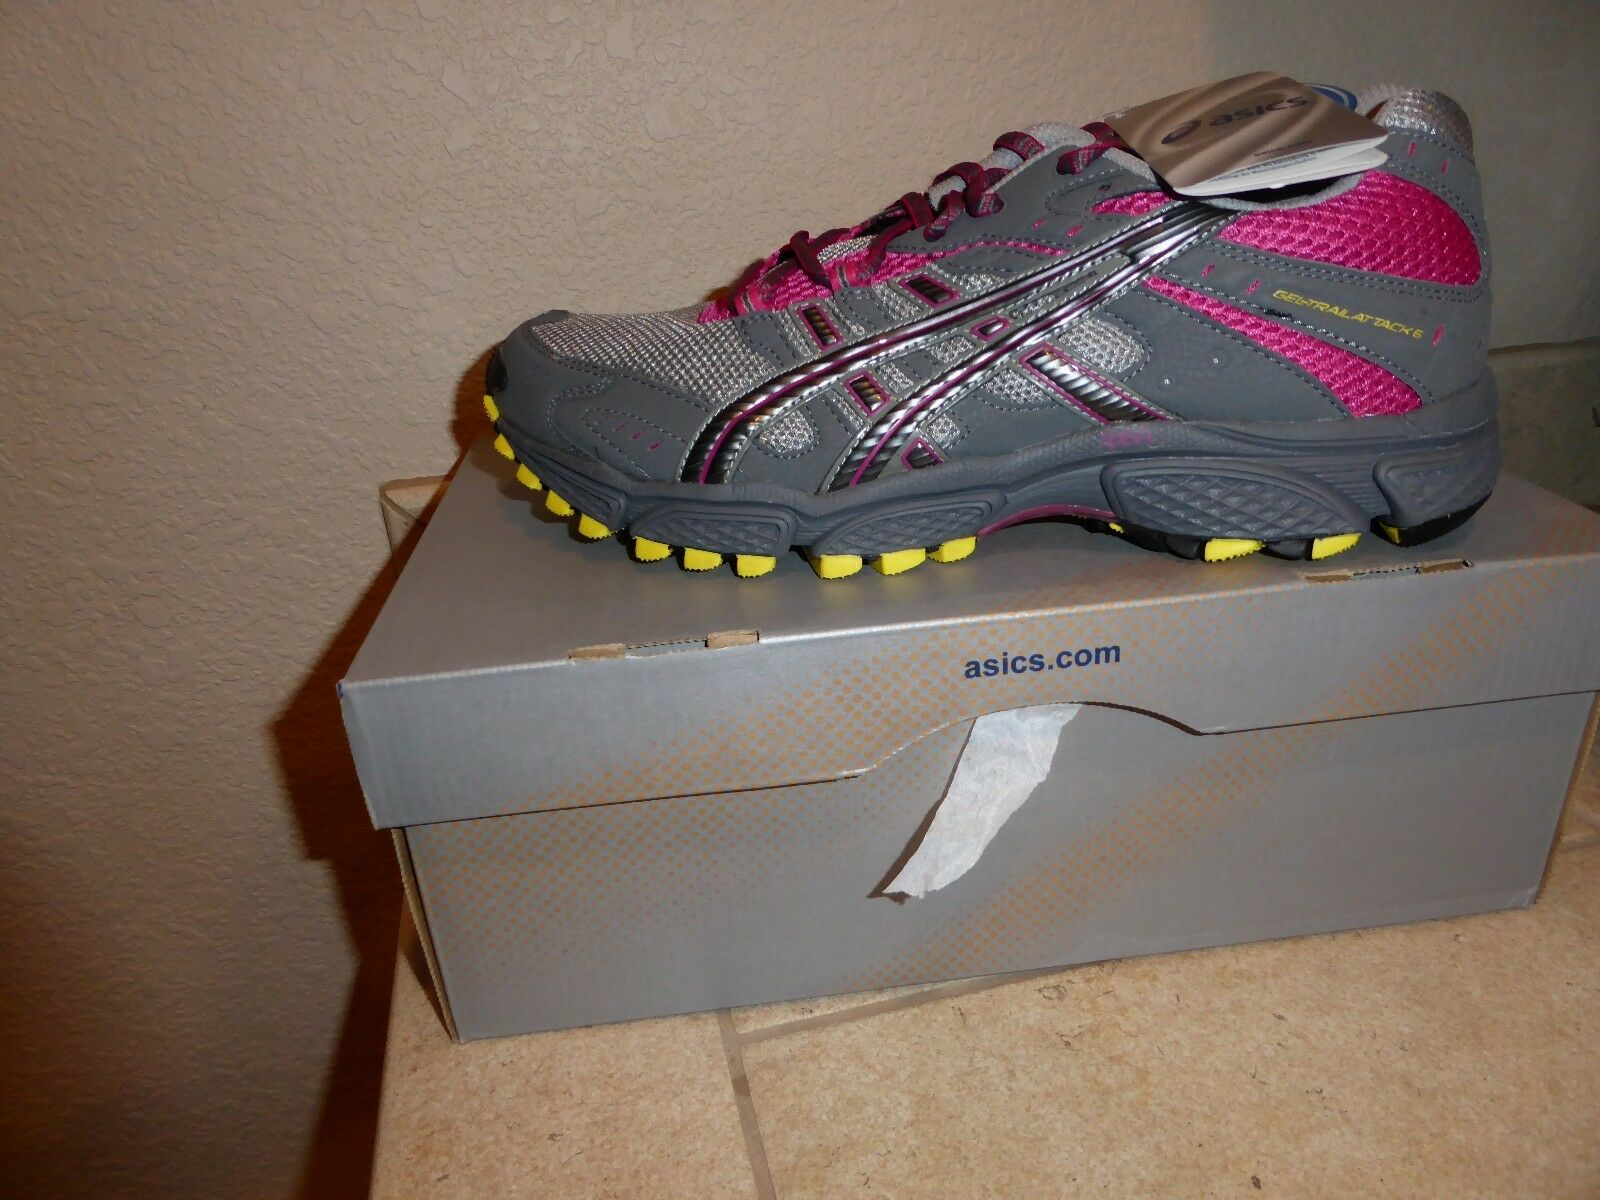 NIB Asics Gel Trail Attack 6 donna Trail Running Hiking scarpe Dimensione 10.5 US RARE